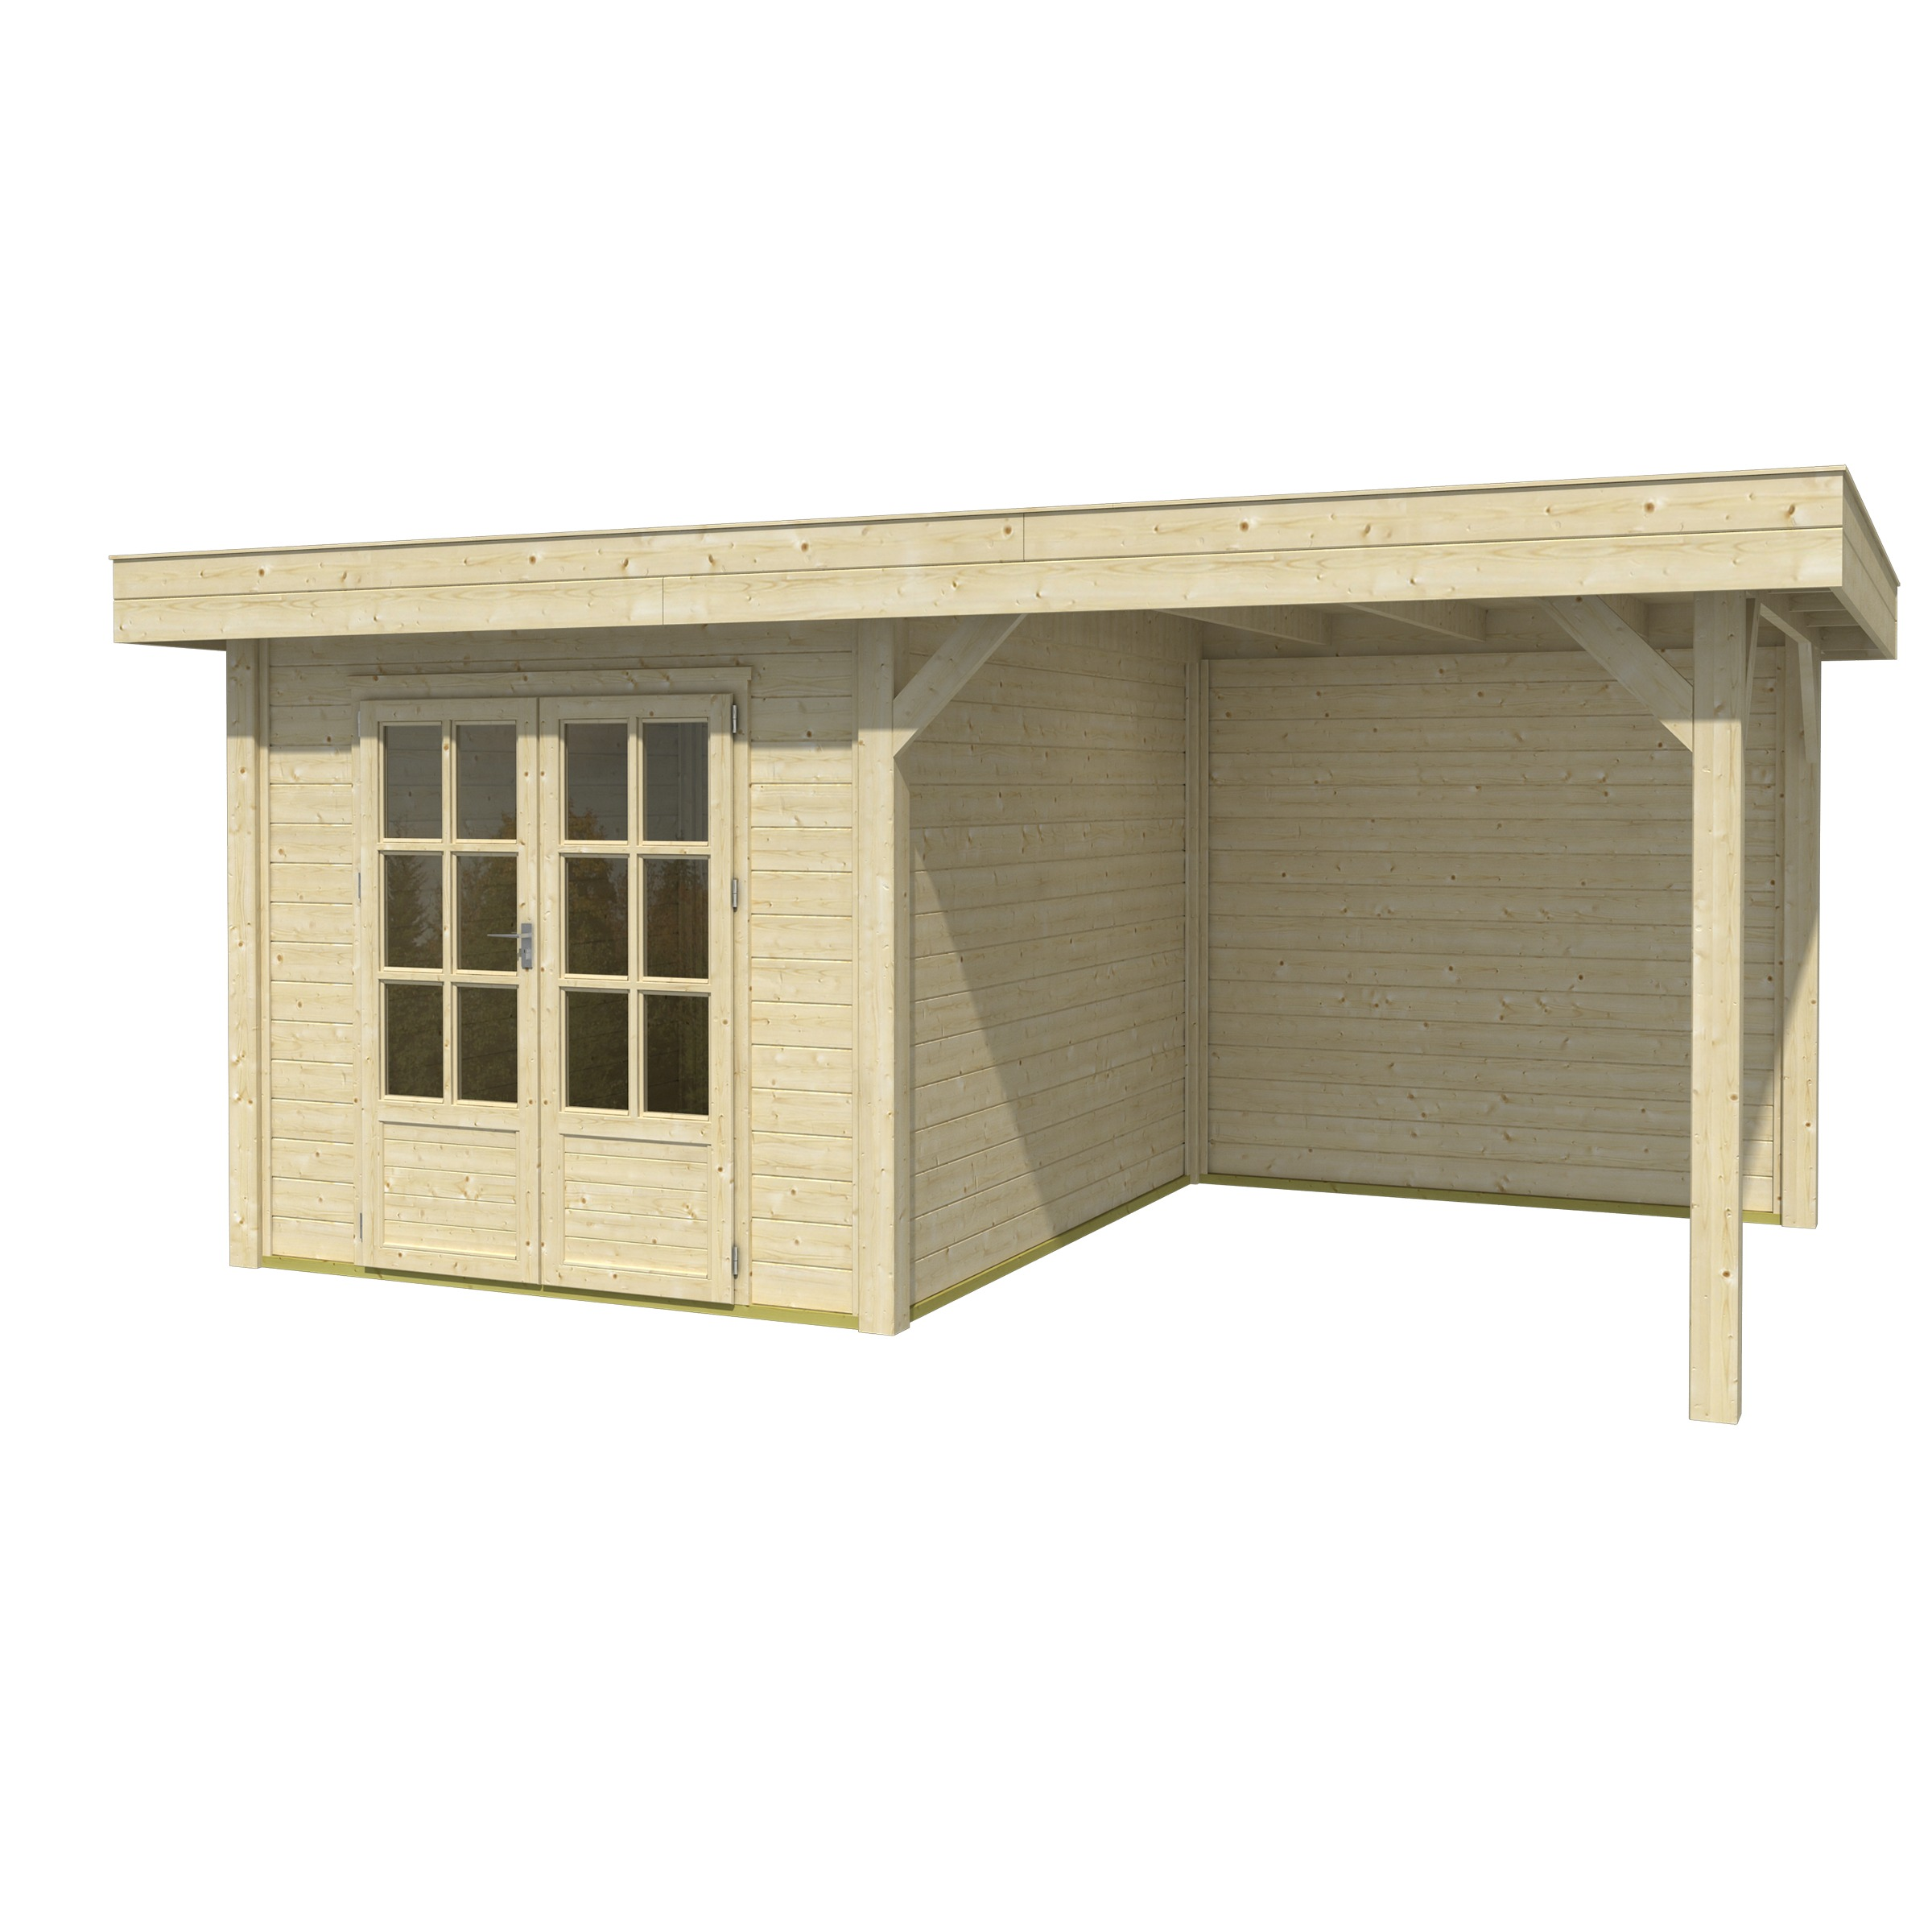 OLP Outdoor Life Products Tuinhuis met Overkapping Outdoor Living 5030 Extra